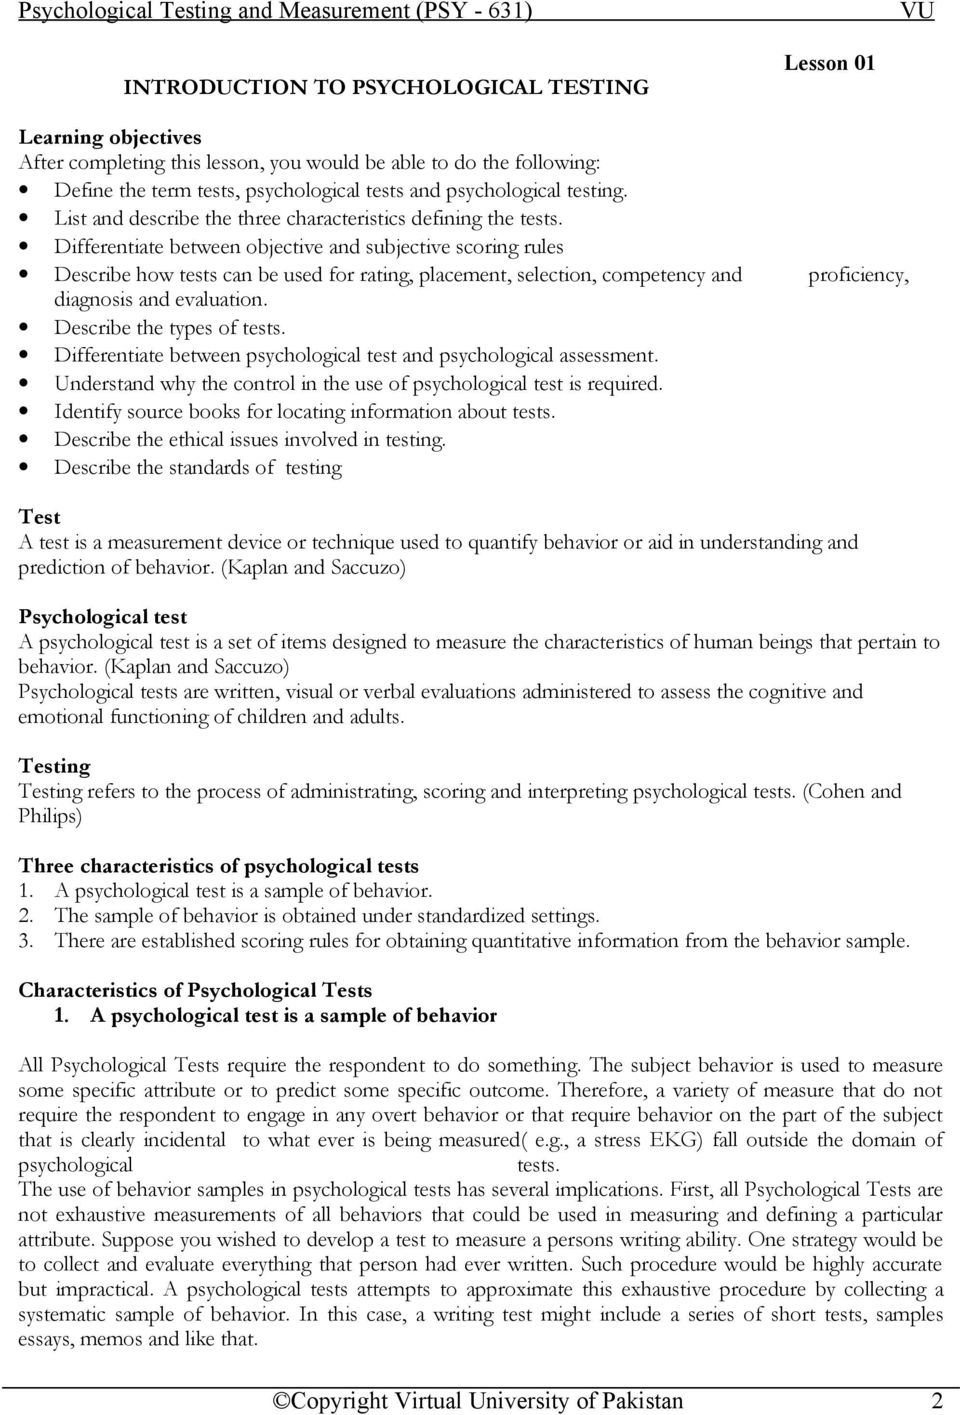 Psychological Testing and Measurement (PSY - 631) Table of Contents